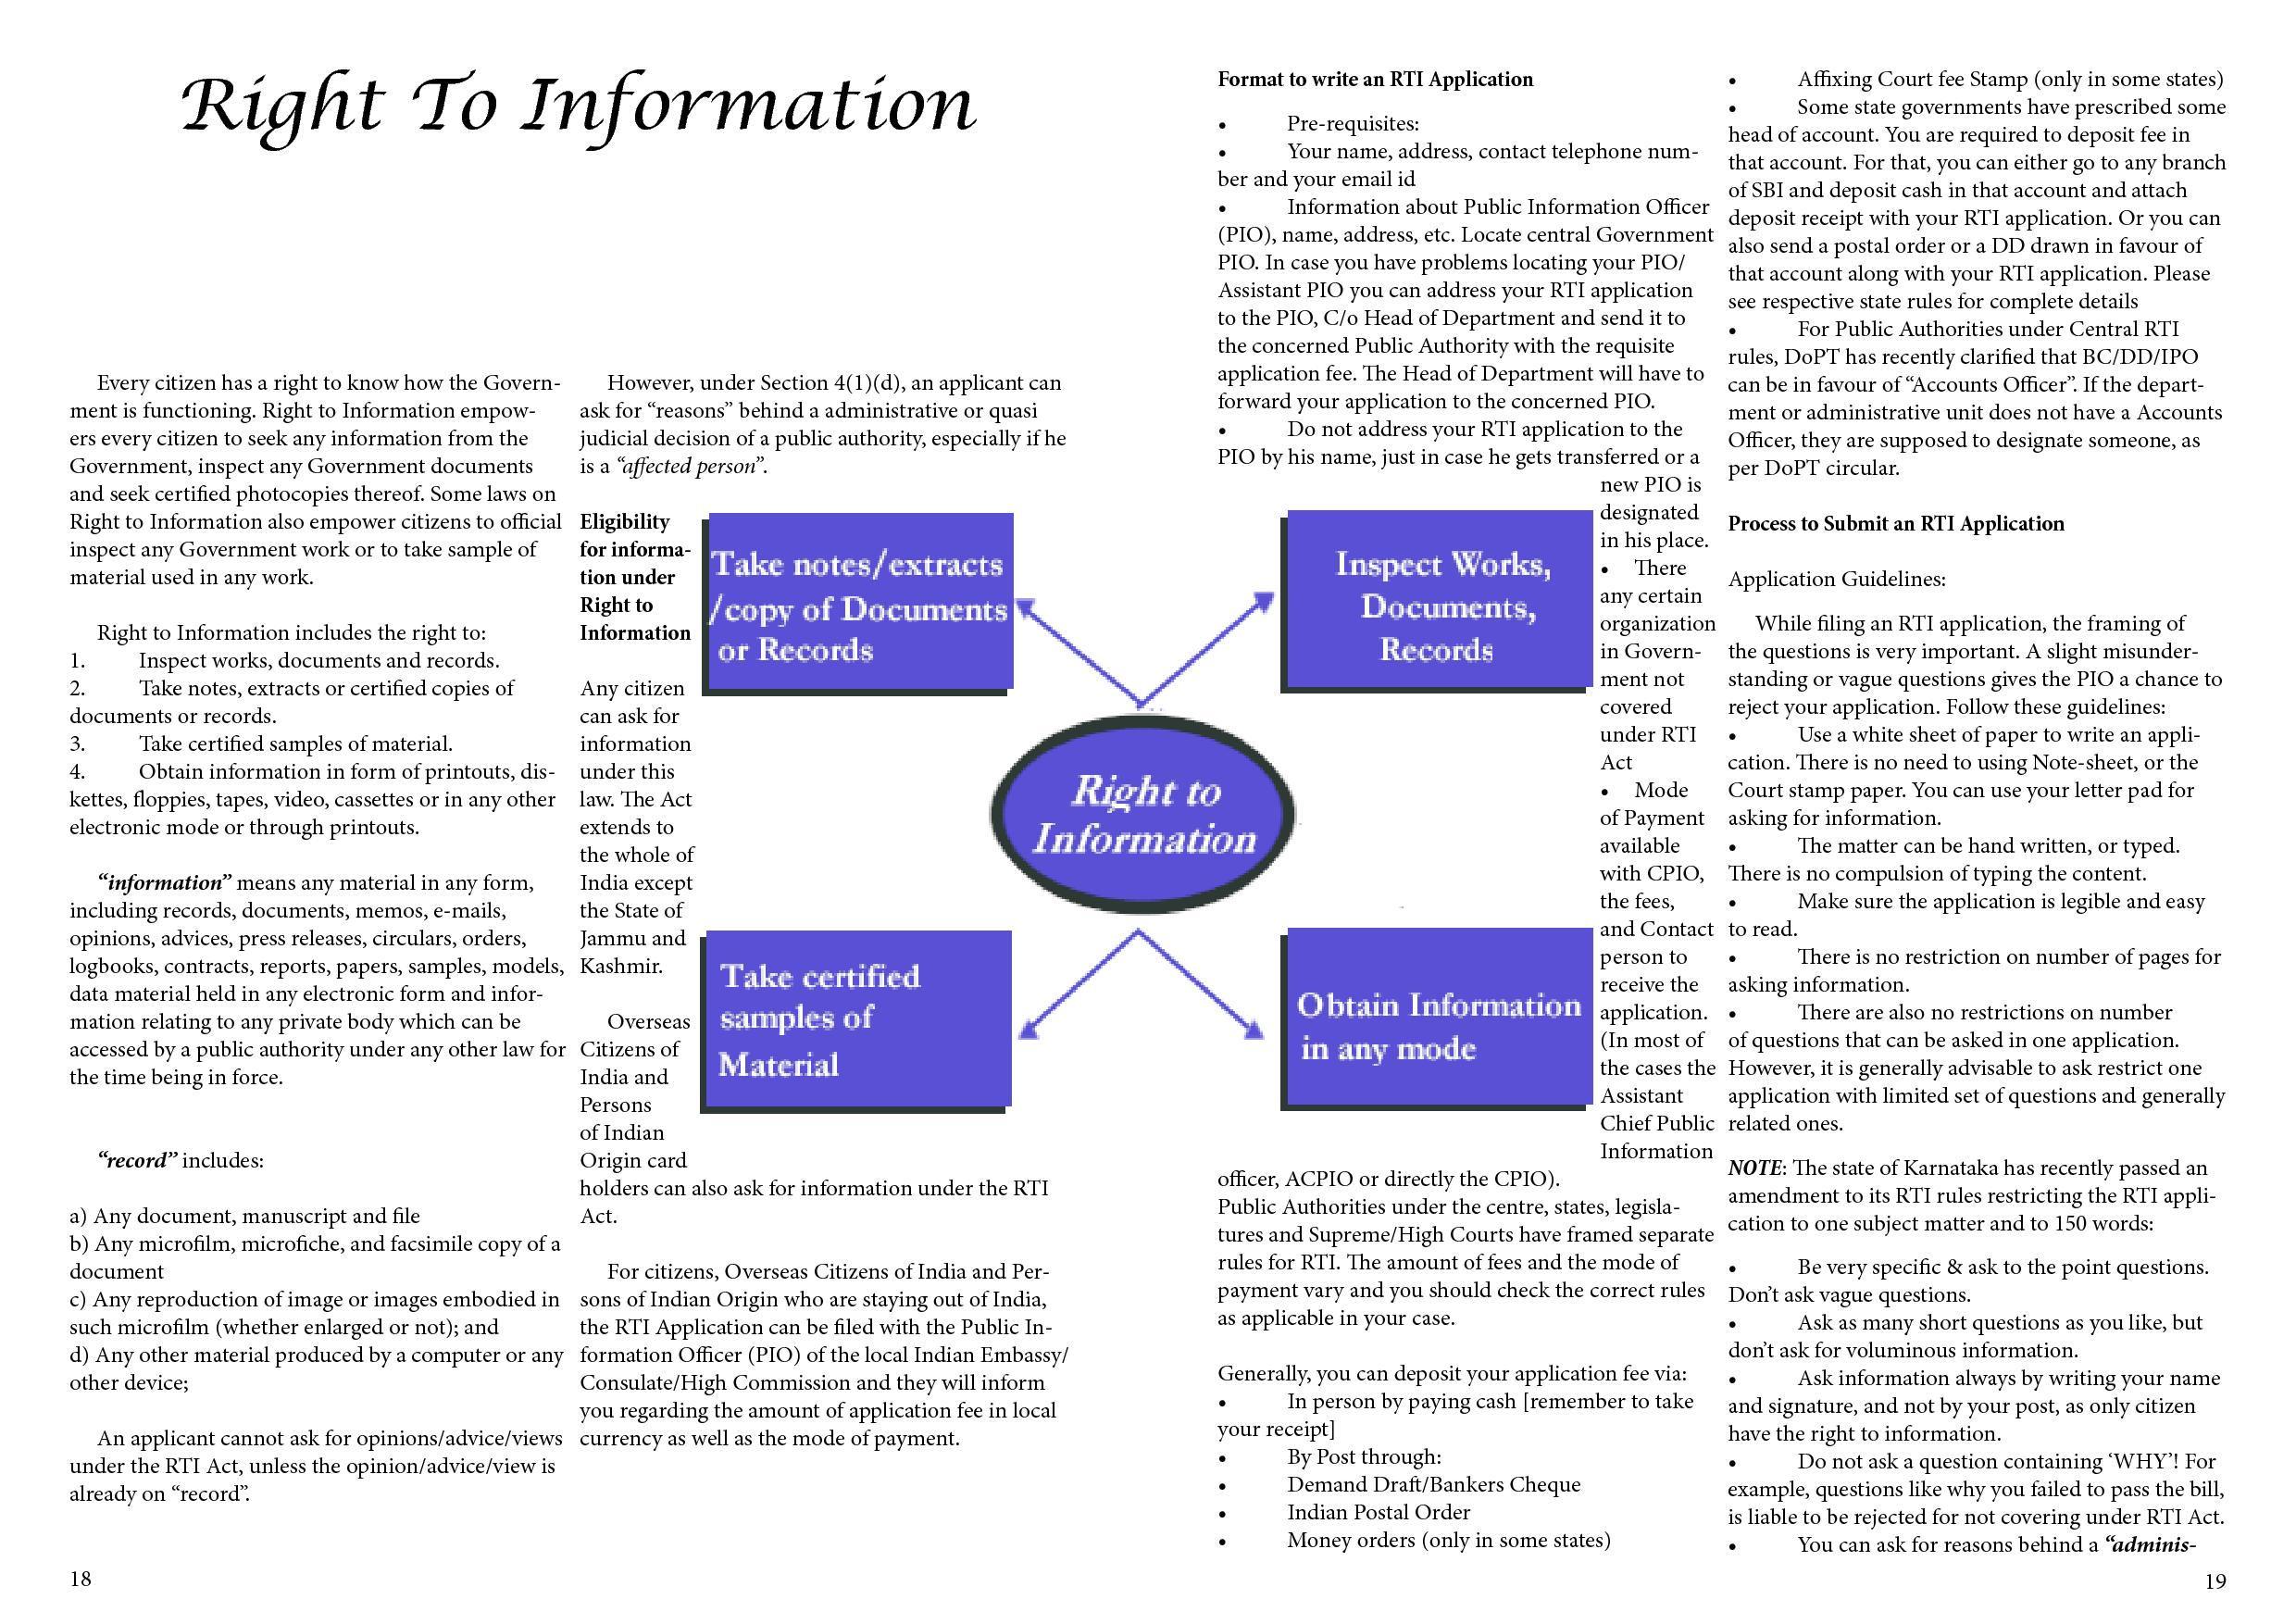 right to information in public bodies